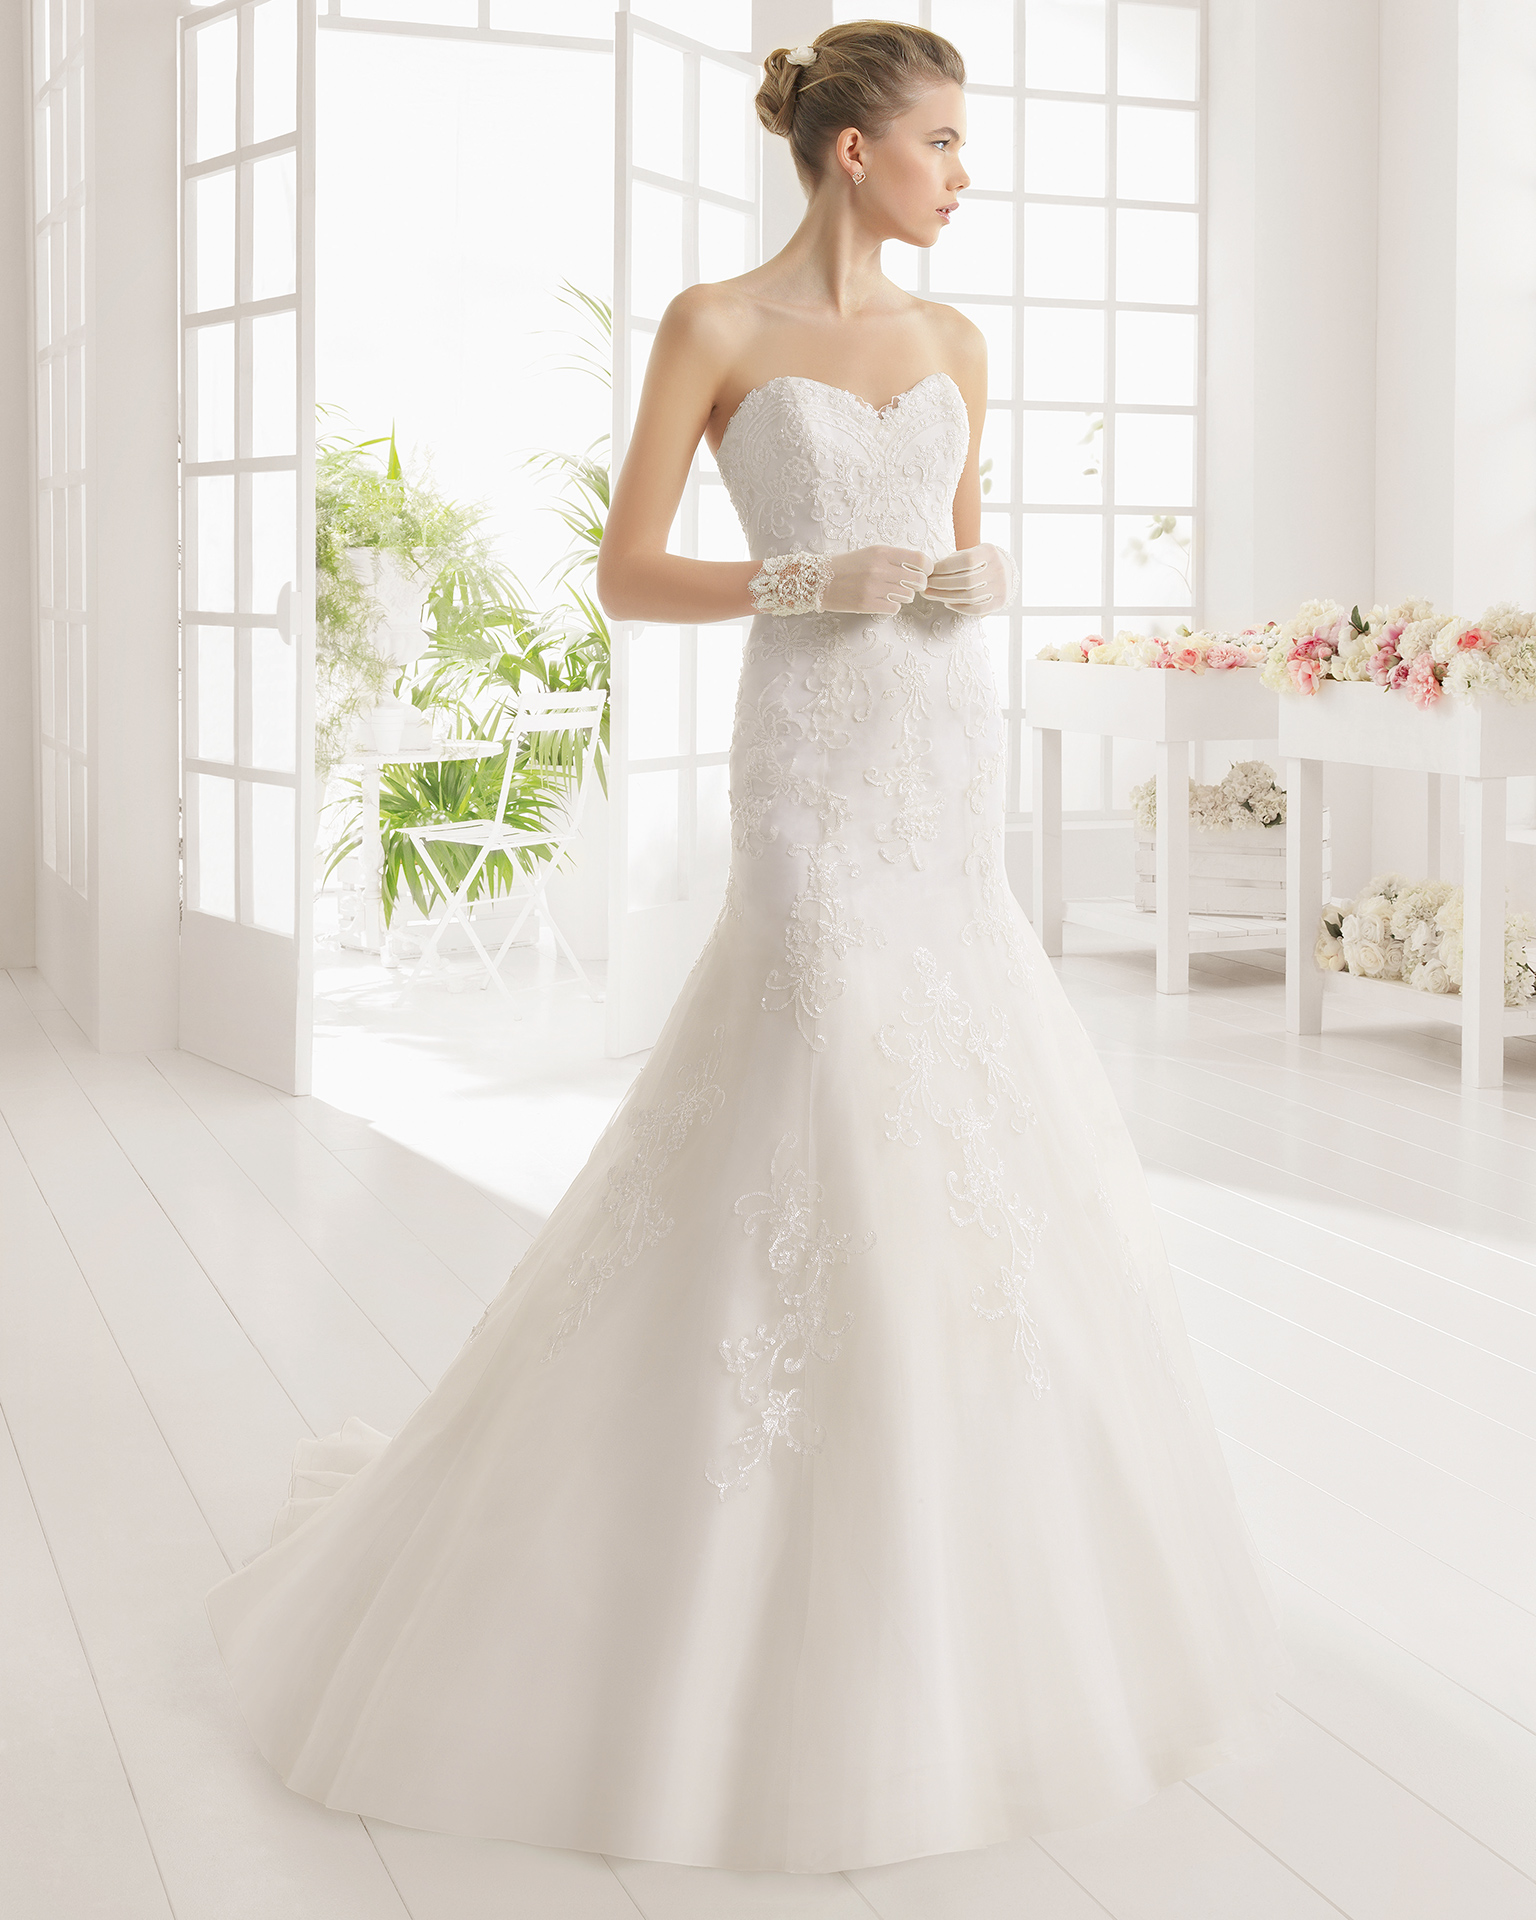 MARIETTE beaded embroidered tulle wedding dress.